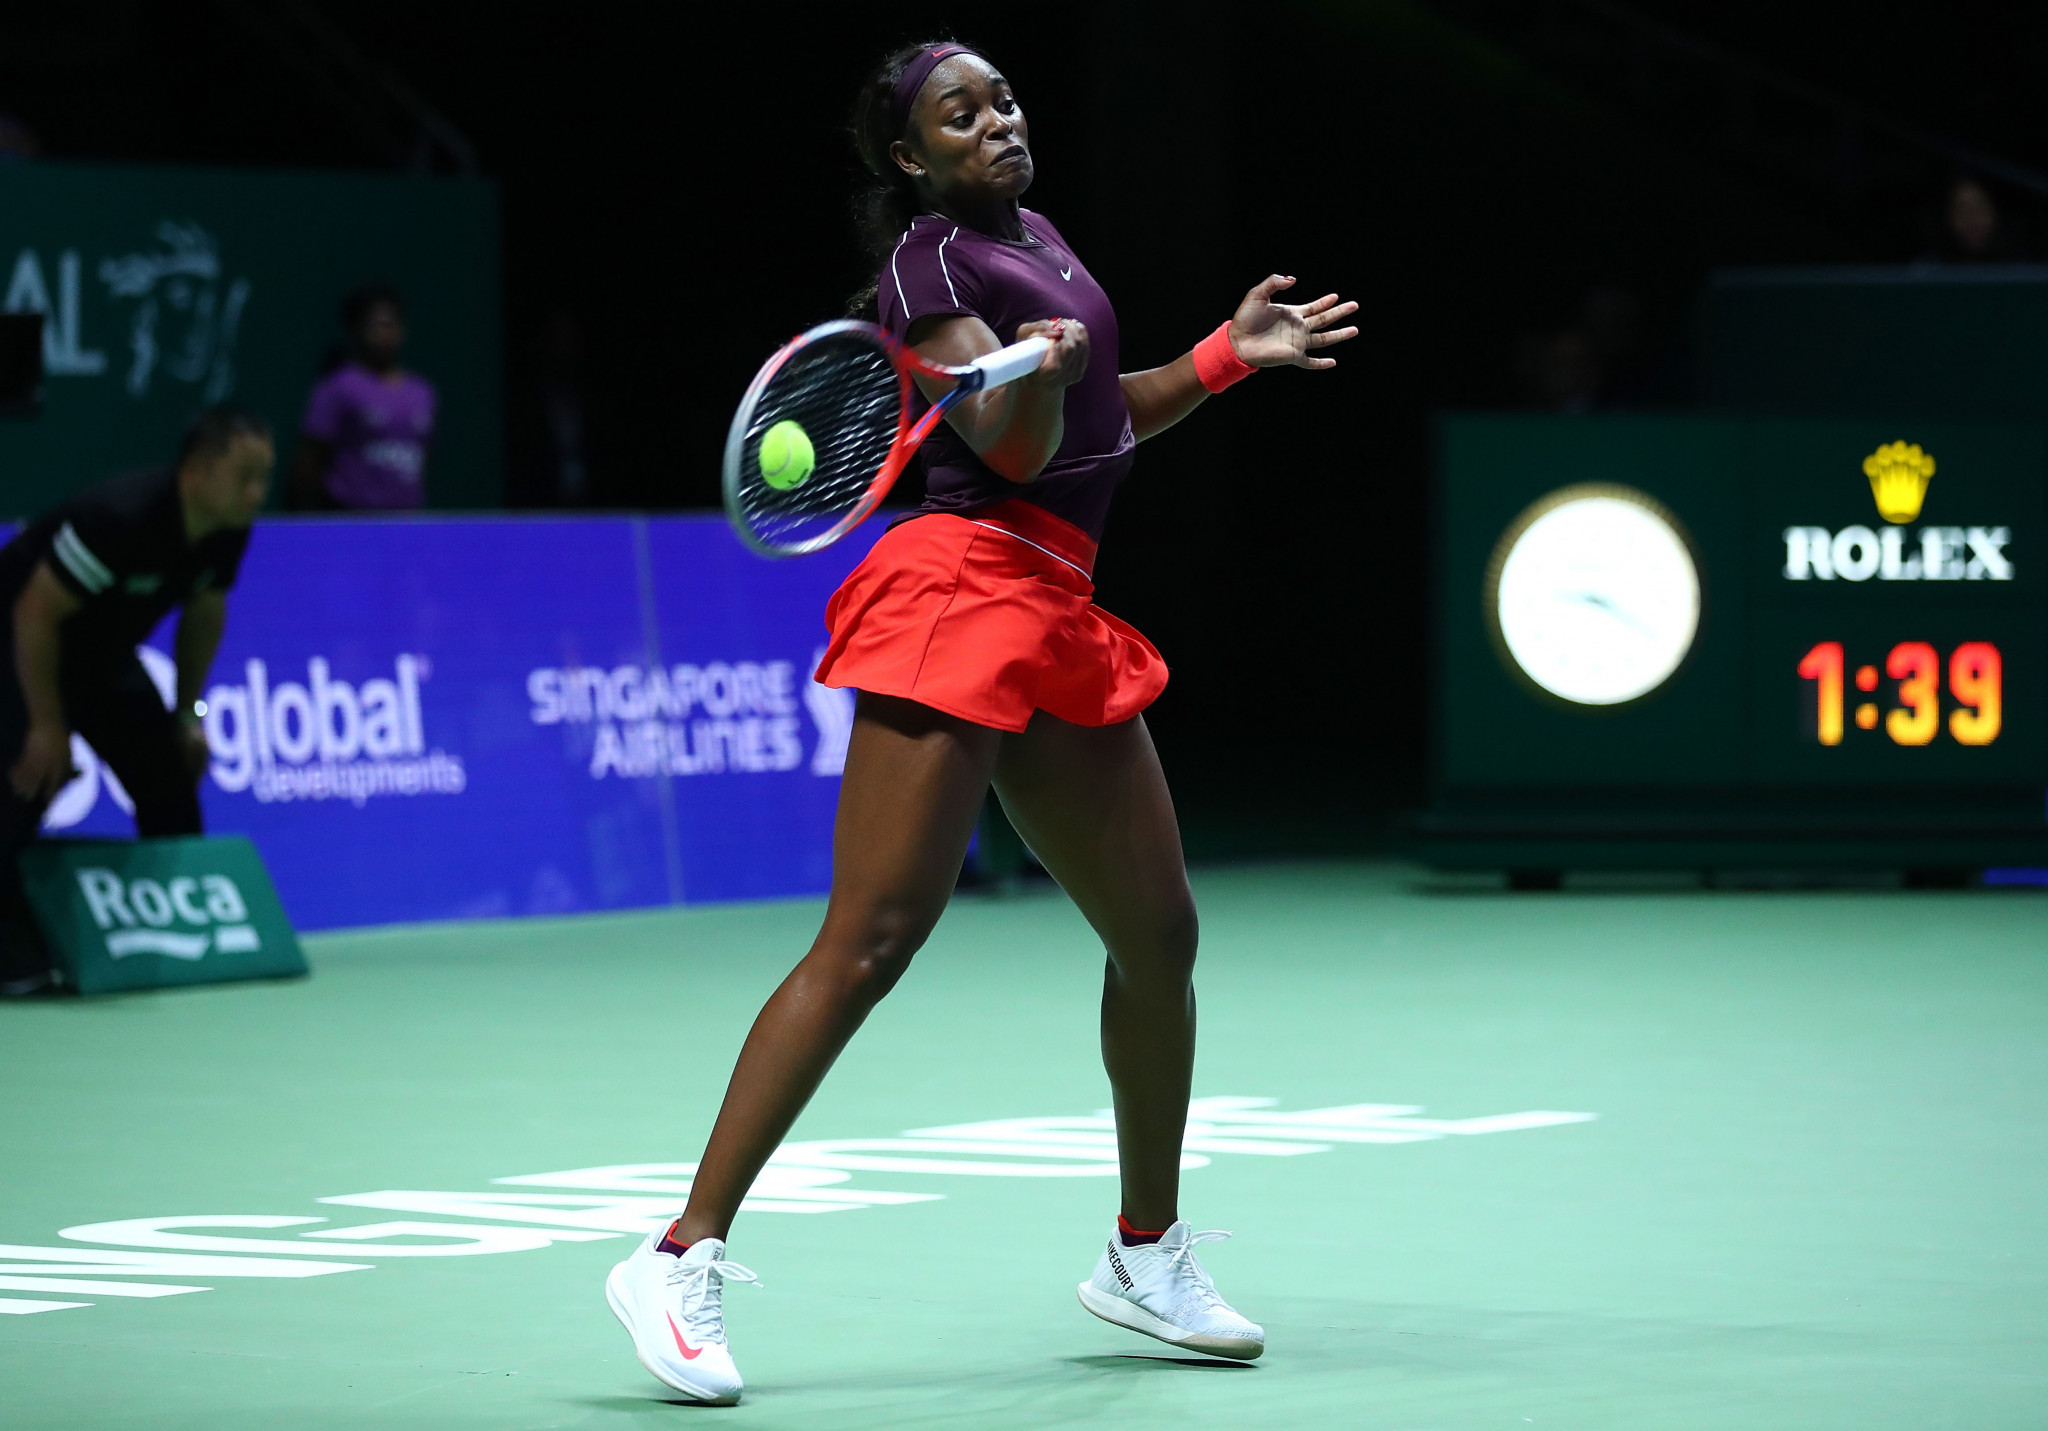 Stephens fights back to set up Svitolina clash at WTA Finals